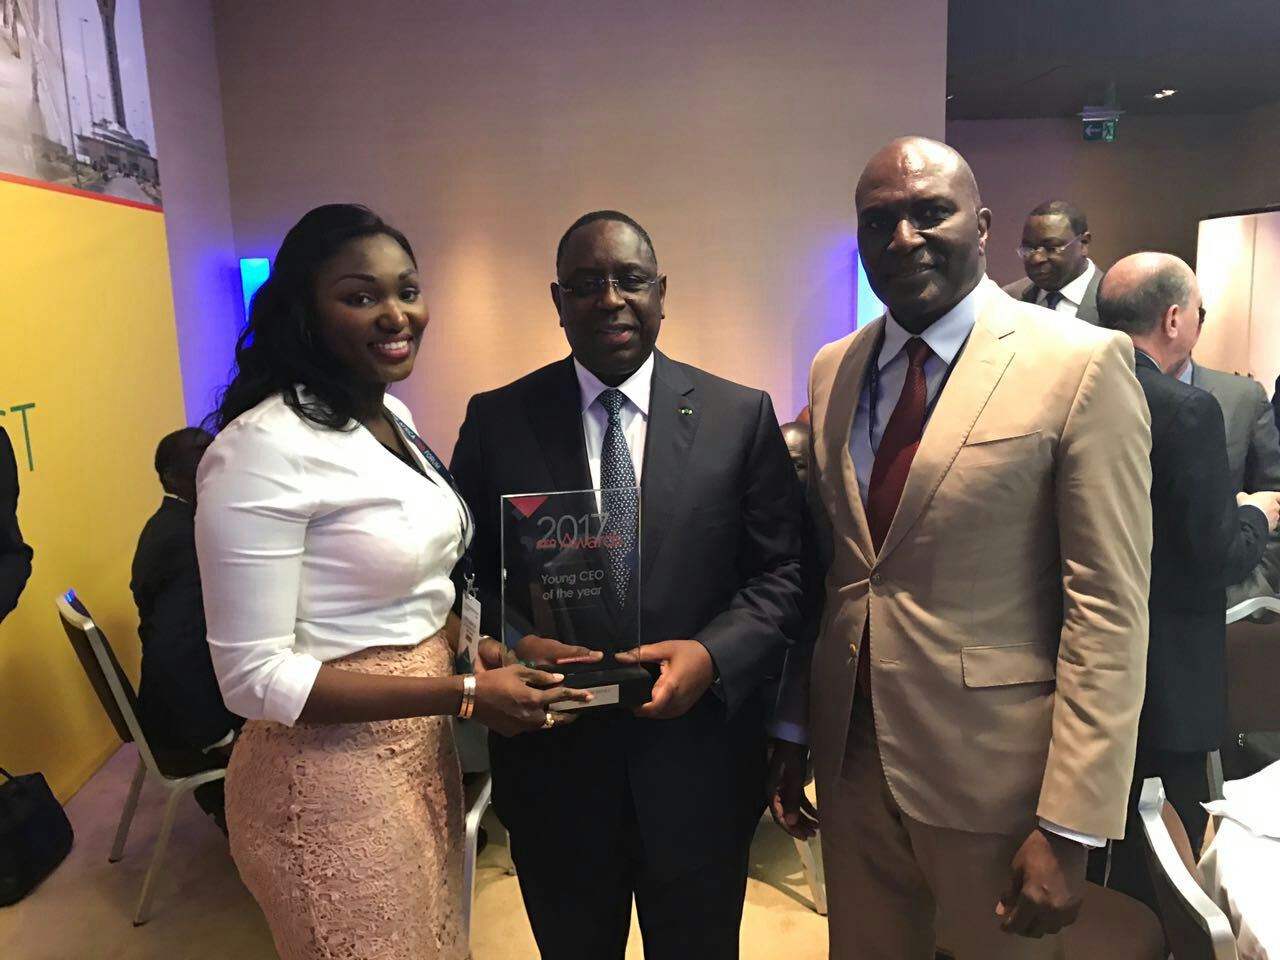 """Africa CEO Forum 2017: Anta Babacar Ngom Bathily lauréate du prix """"Young CEO Of The Year"""""""